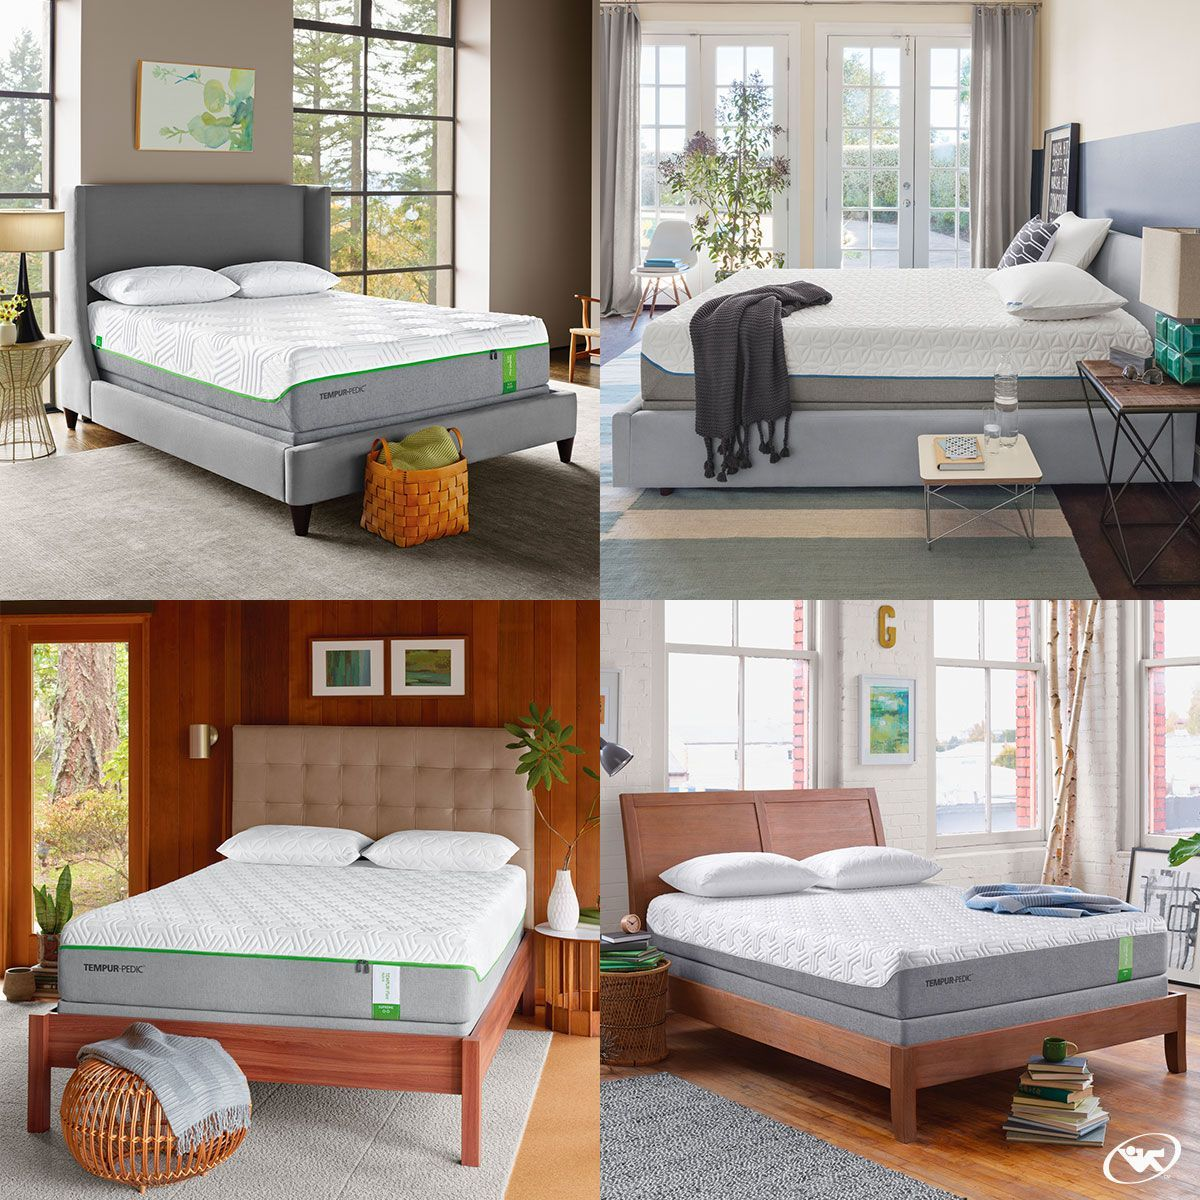 There Is Still Time To Save During Our Tempur Pedic Fan Event Through 6 3 Save Up To 700 On Select Tempur P Tempurpedic Mattress Mattress Sets Tempurpedic